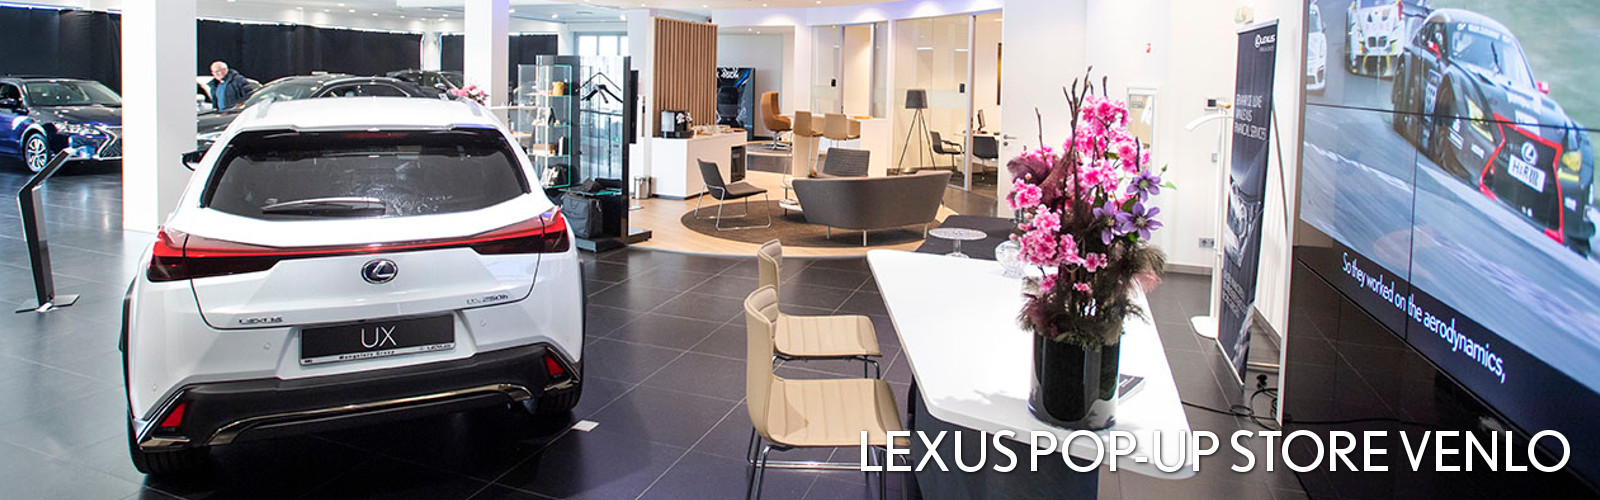 Lexus Pop-Up Store Venlo - Banner